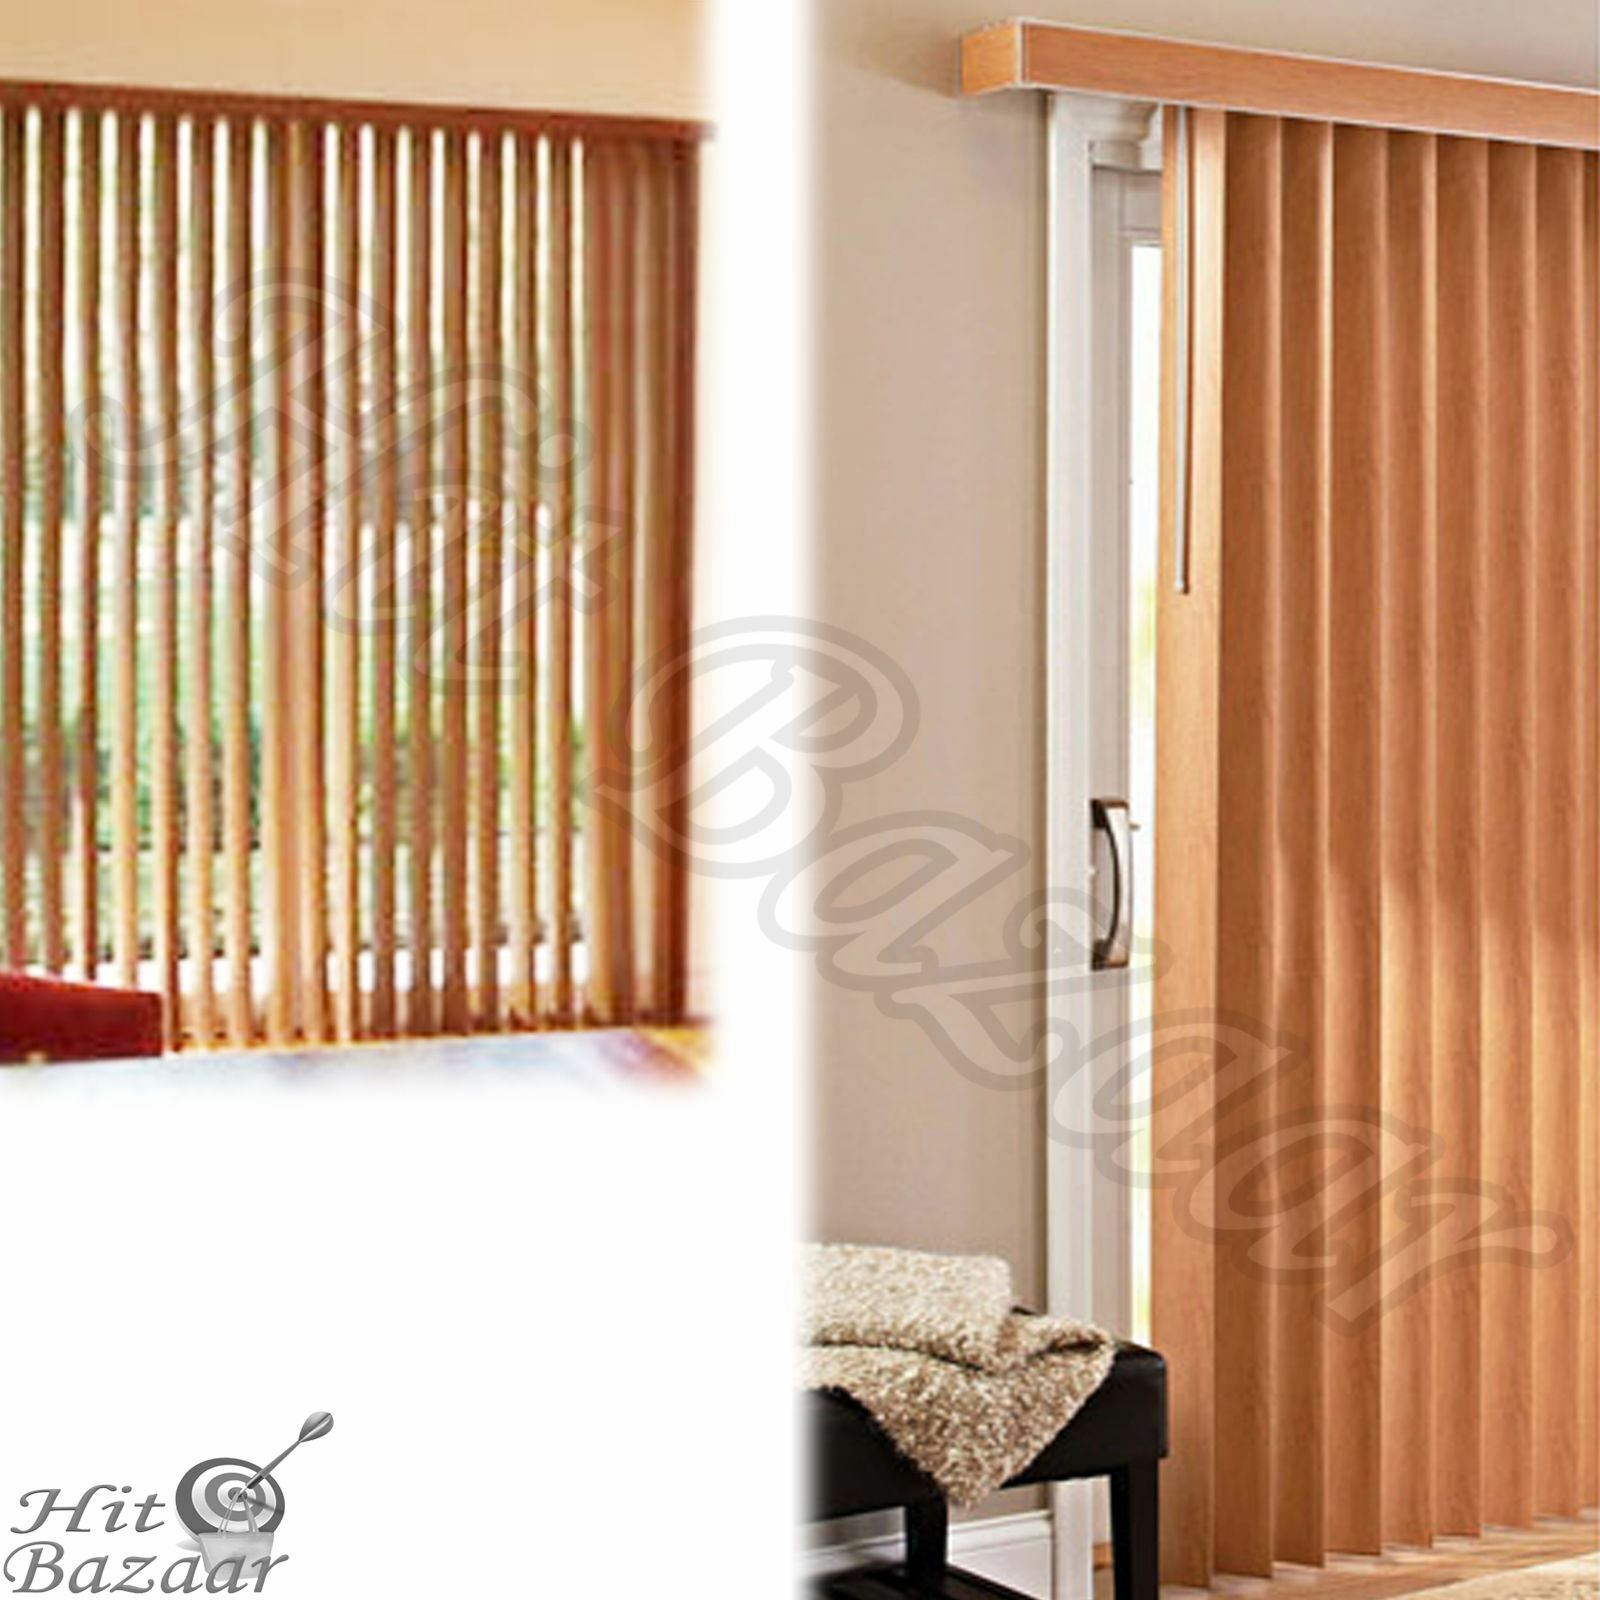 9 Of 12 Vertical Blinds Garden Pvc Privacy Shades Patio Home Window Large Printed Oak 10